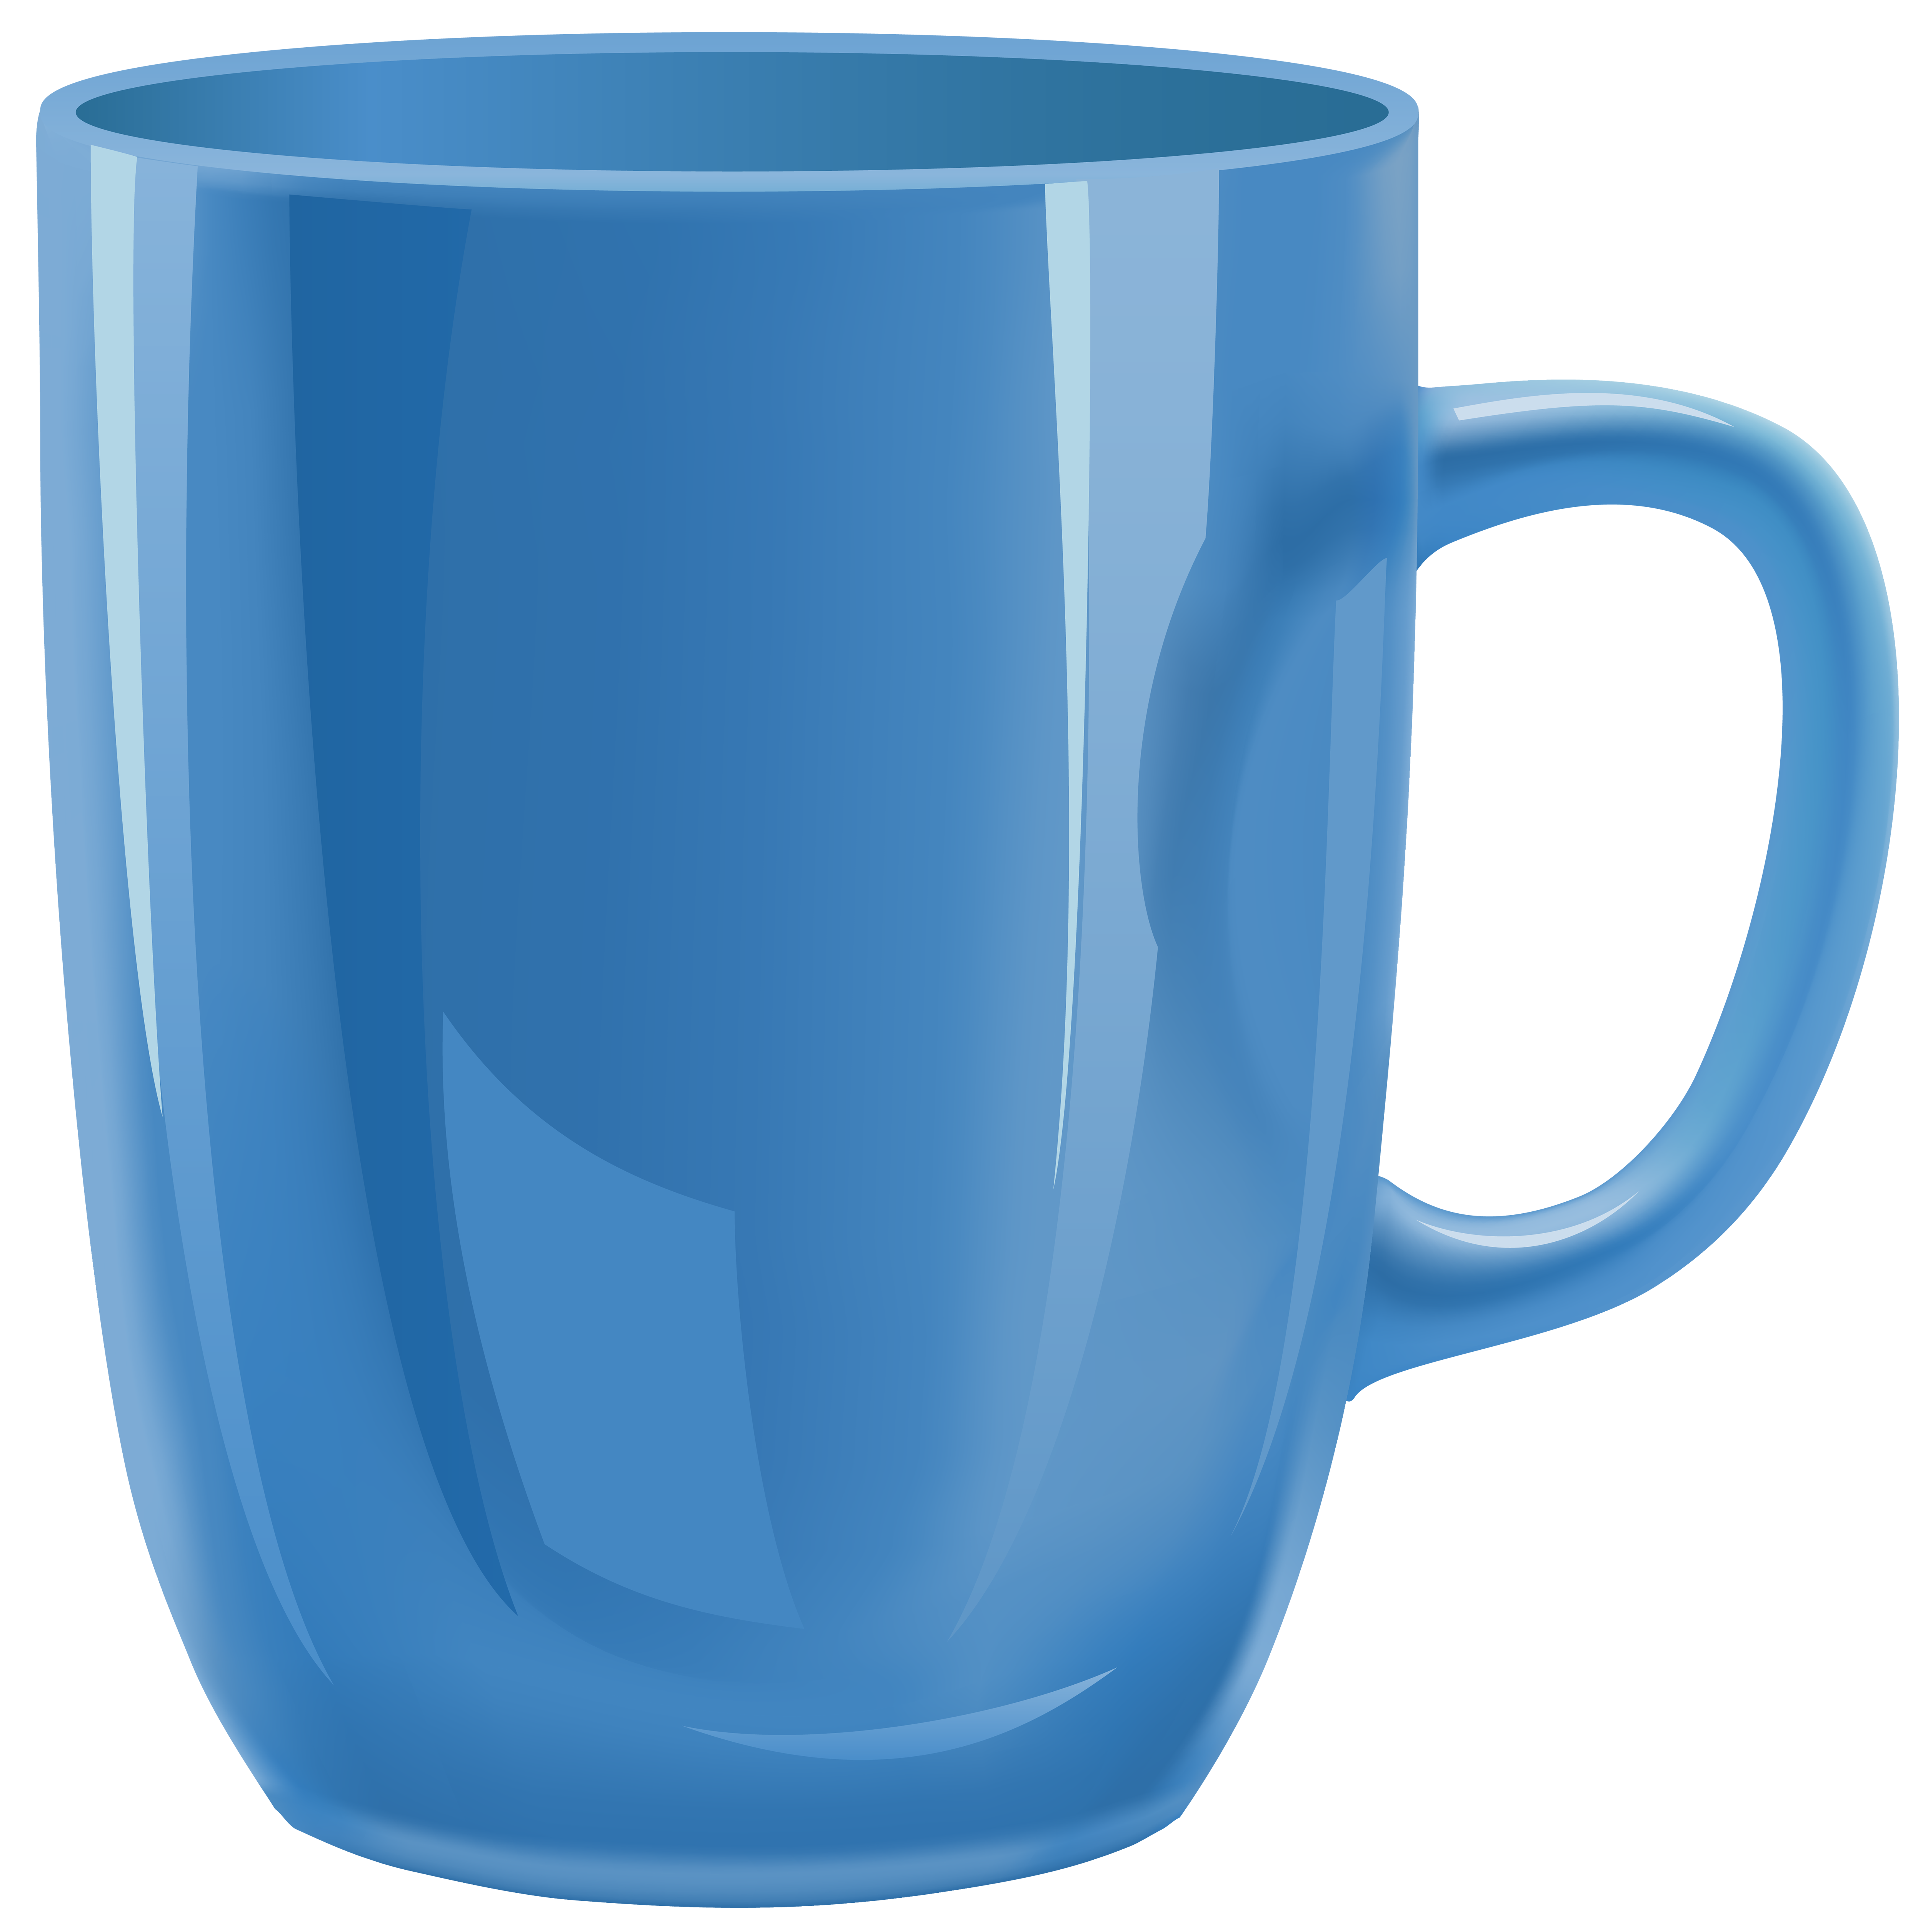 Cups clipart cheap. Blue cup png best